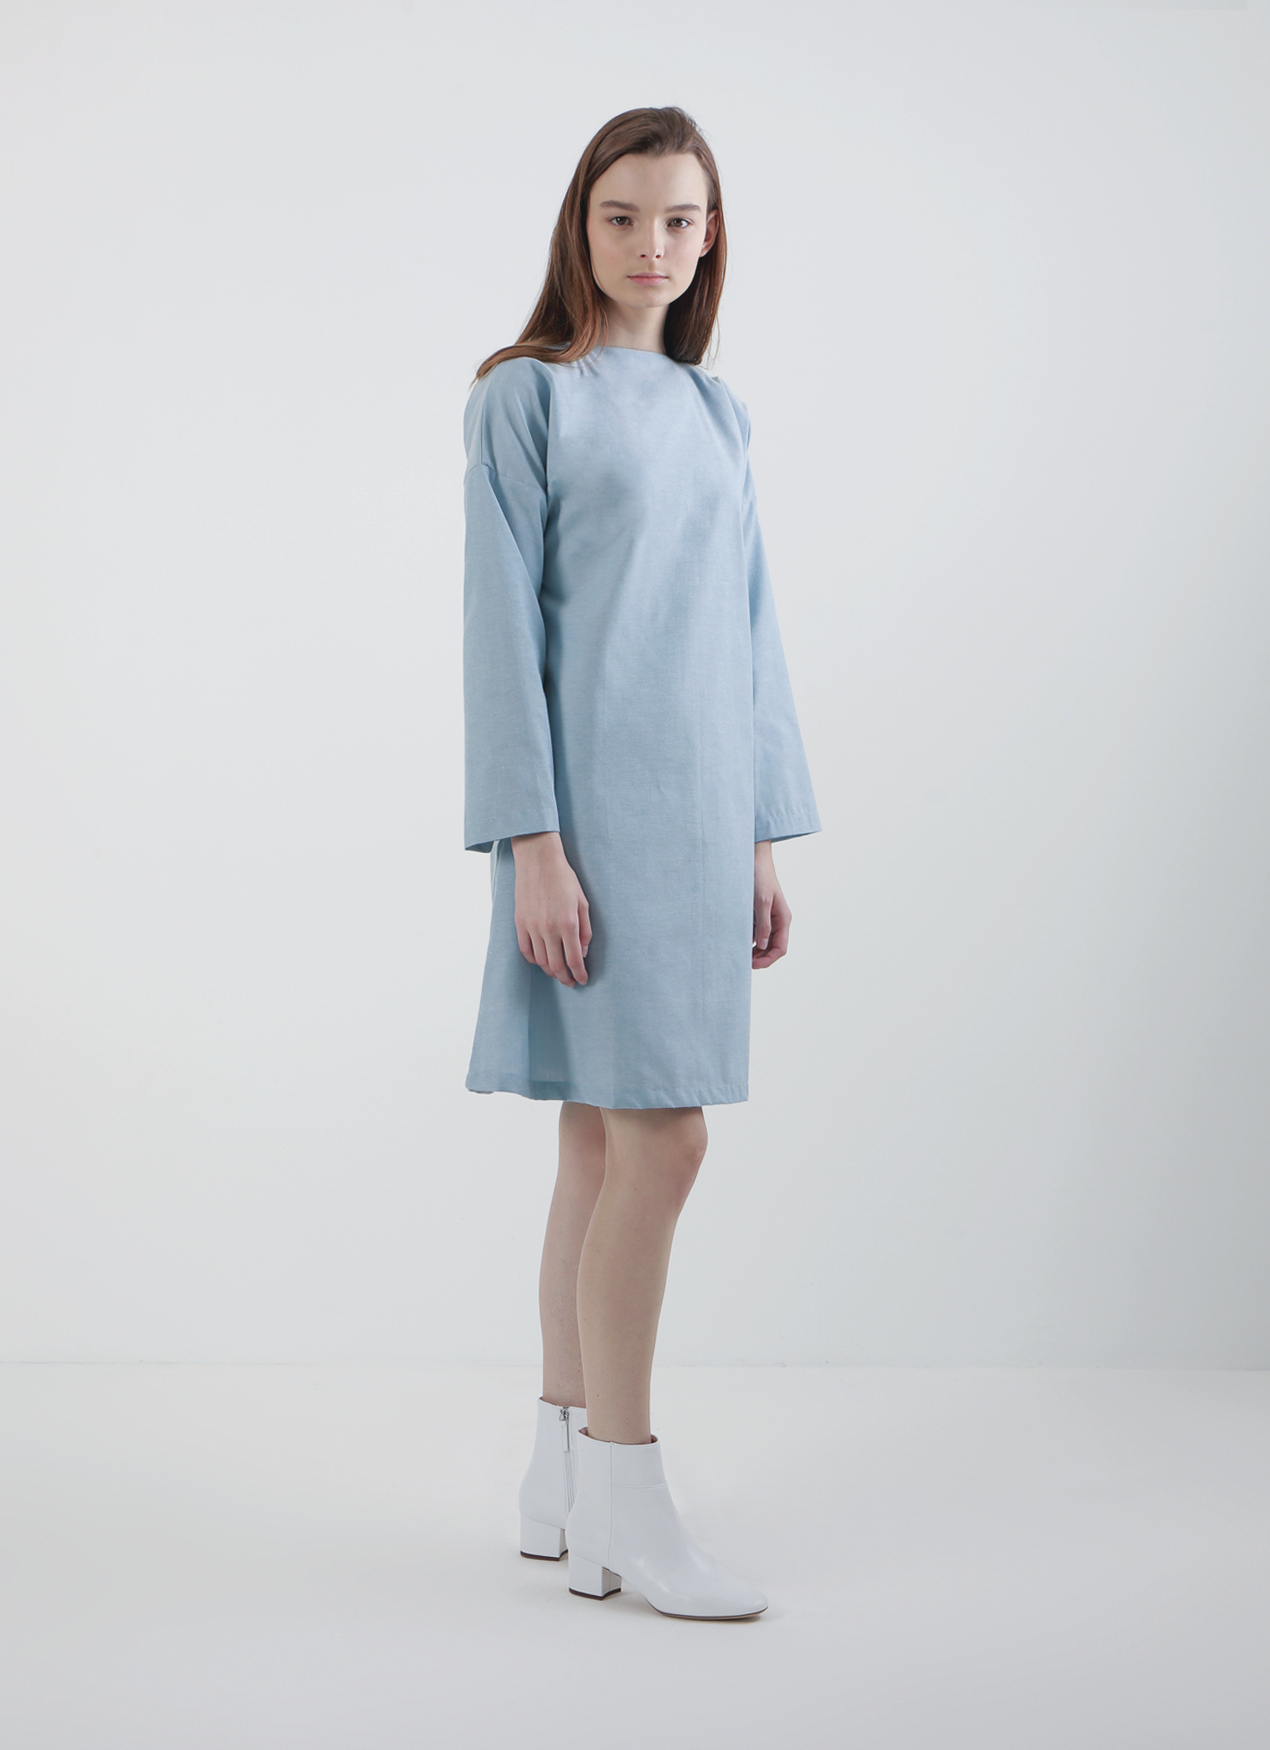 Light Blue Mera Signature Dress, Mera Mera Studio